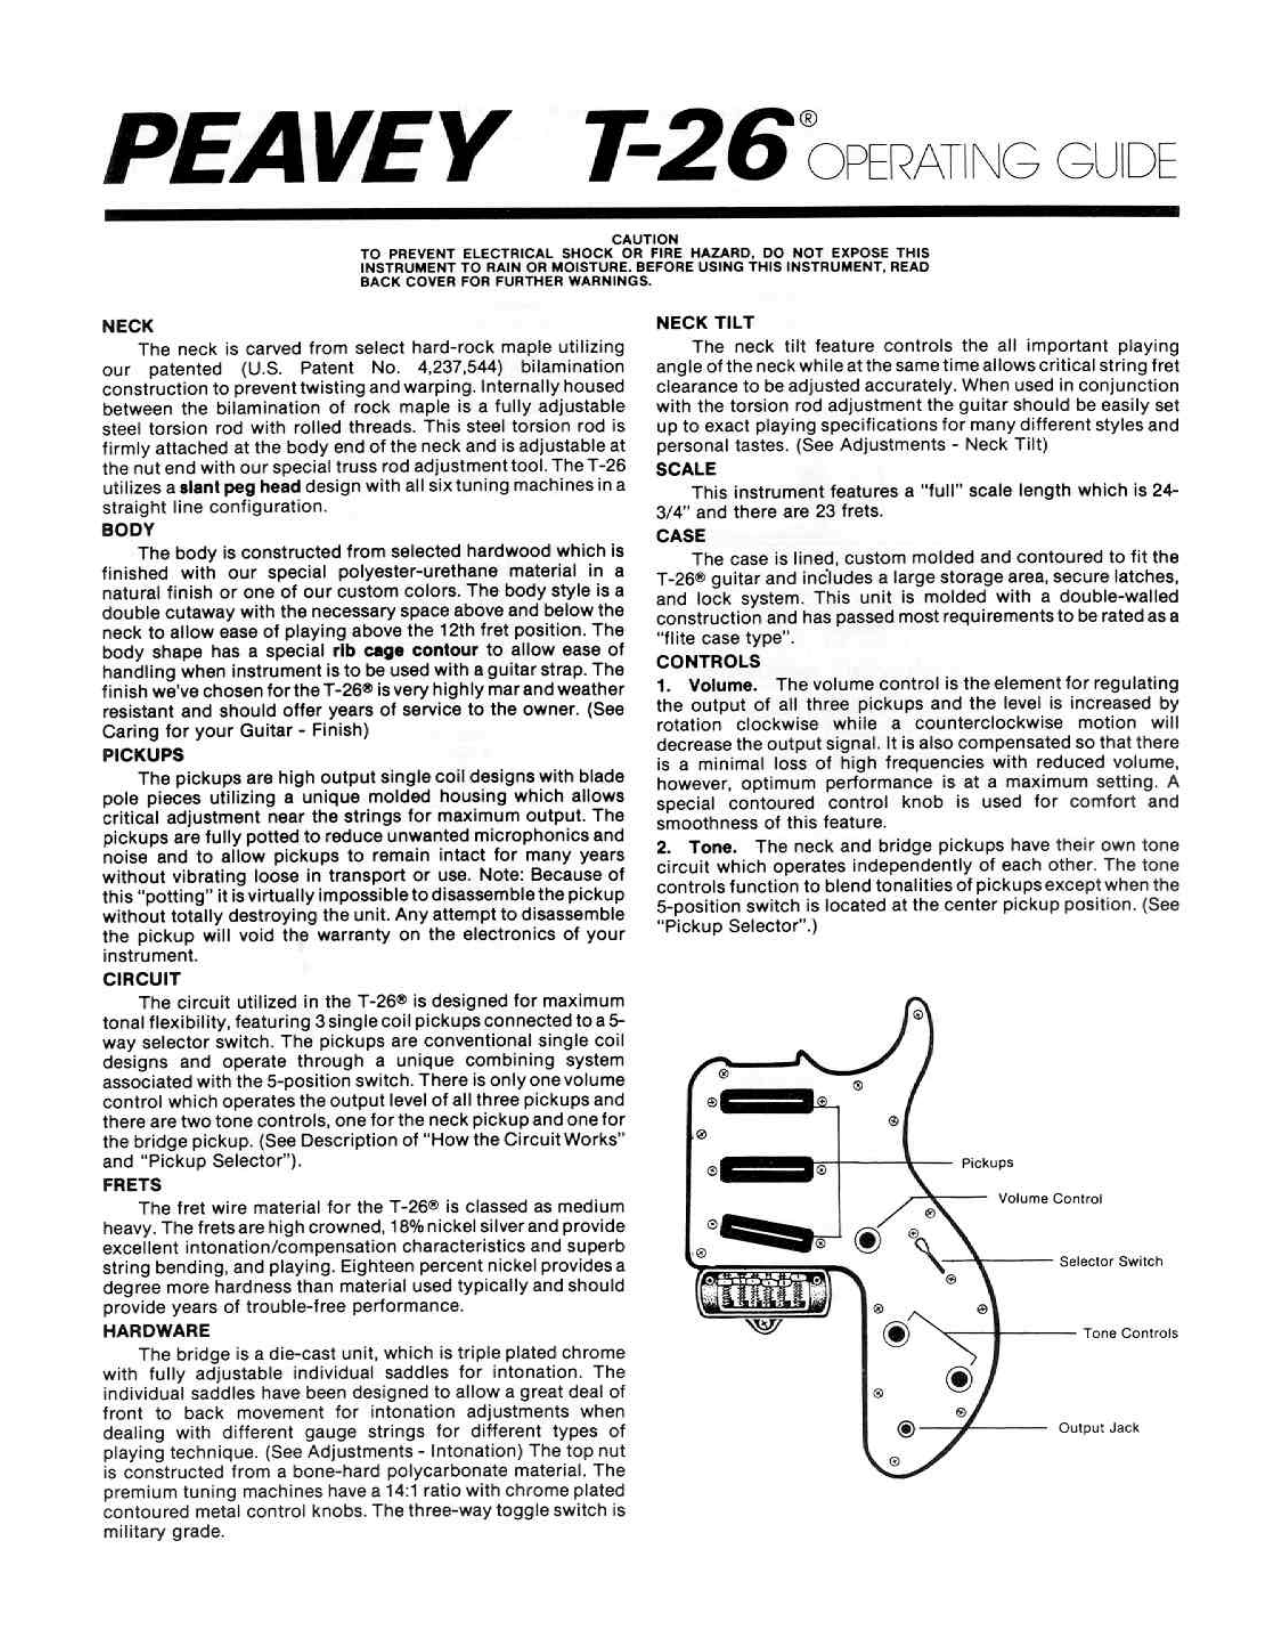 pdf for Peavey Guitar T26 manual